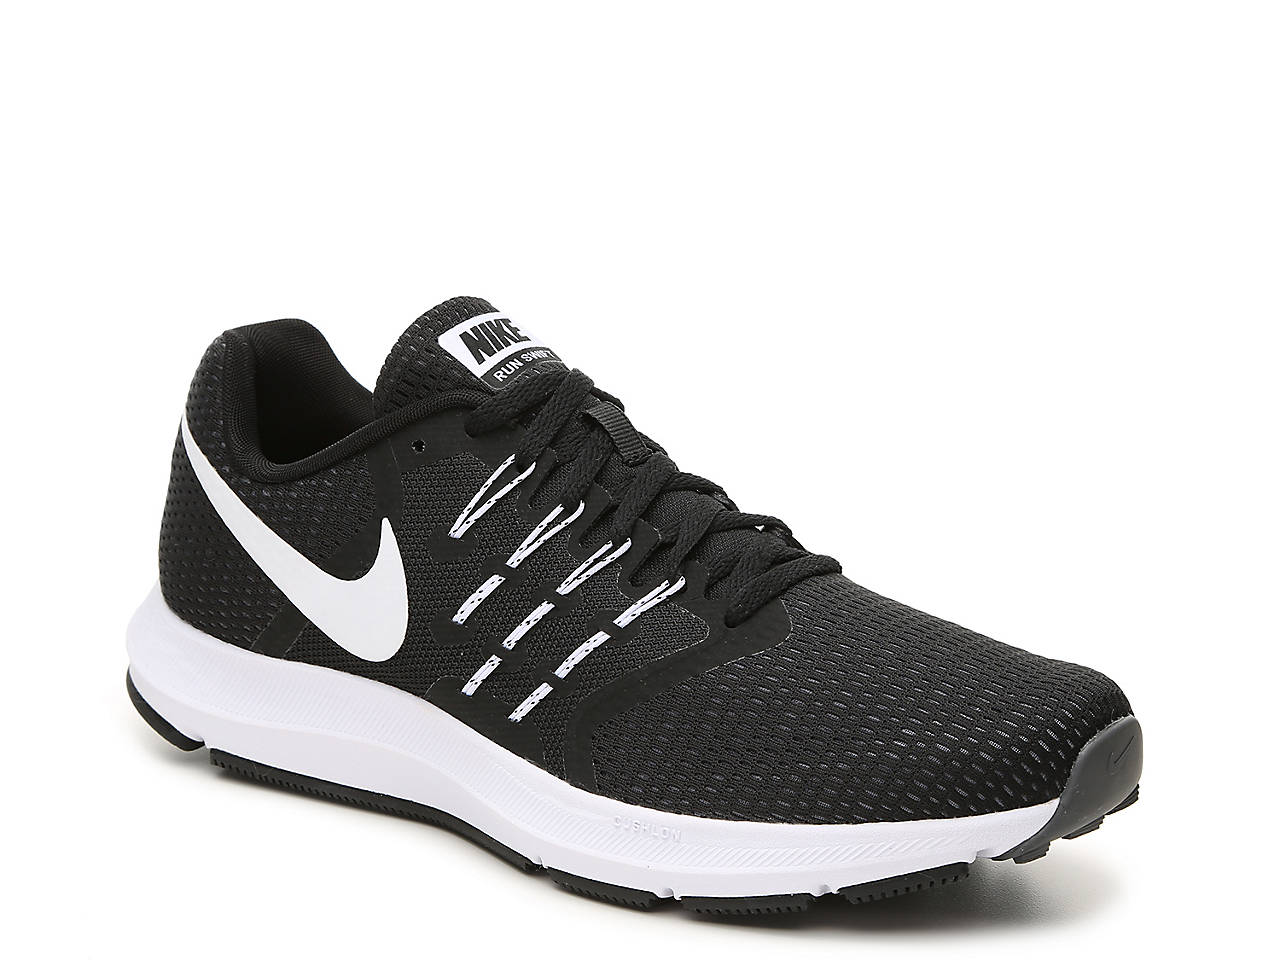 separation shoes 9b351 bd9f0 Nike. Run Swift Lightweight Running Shoe - Men s